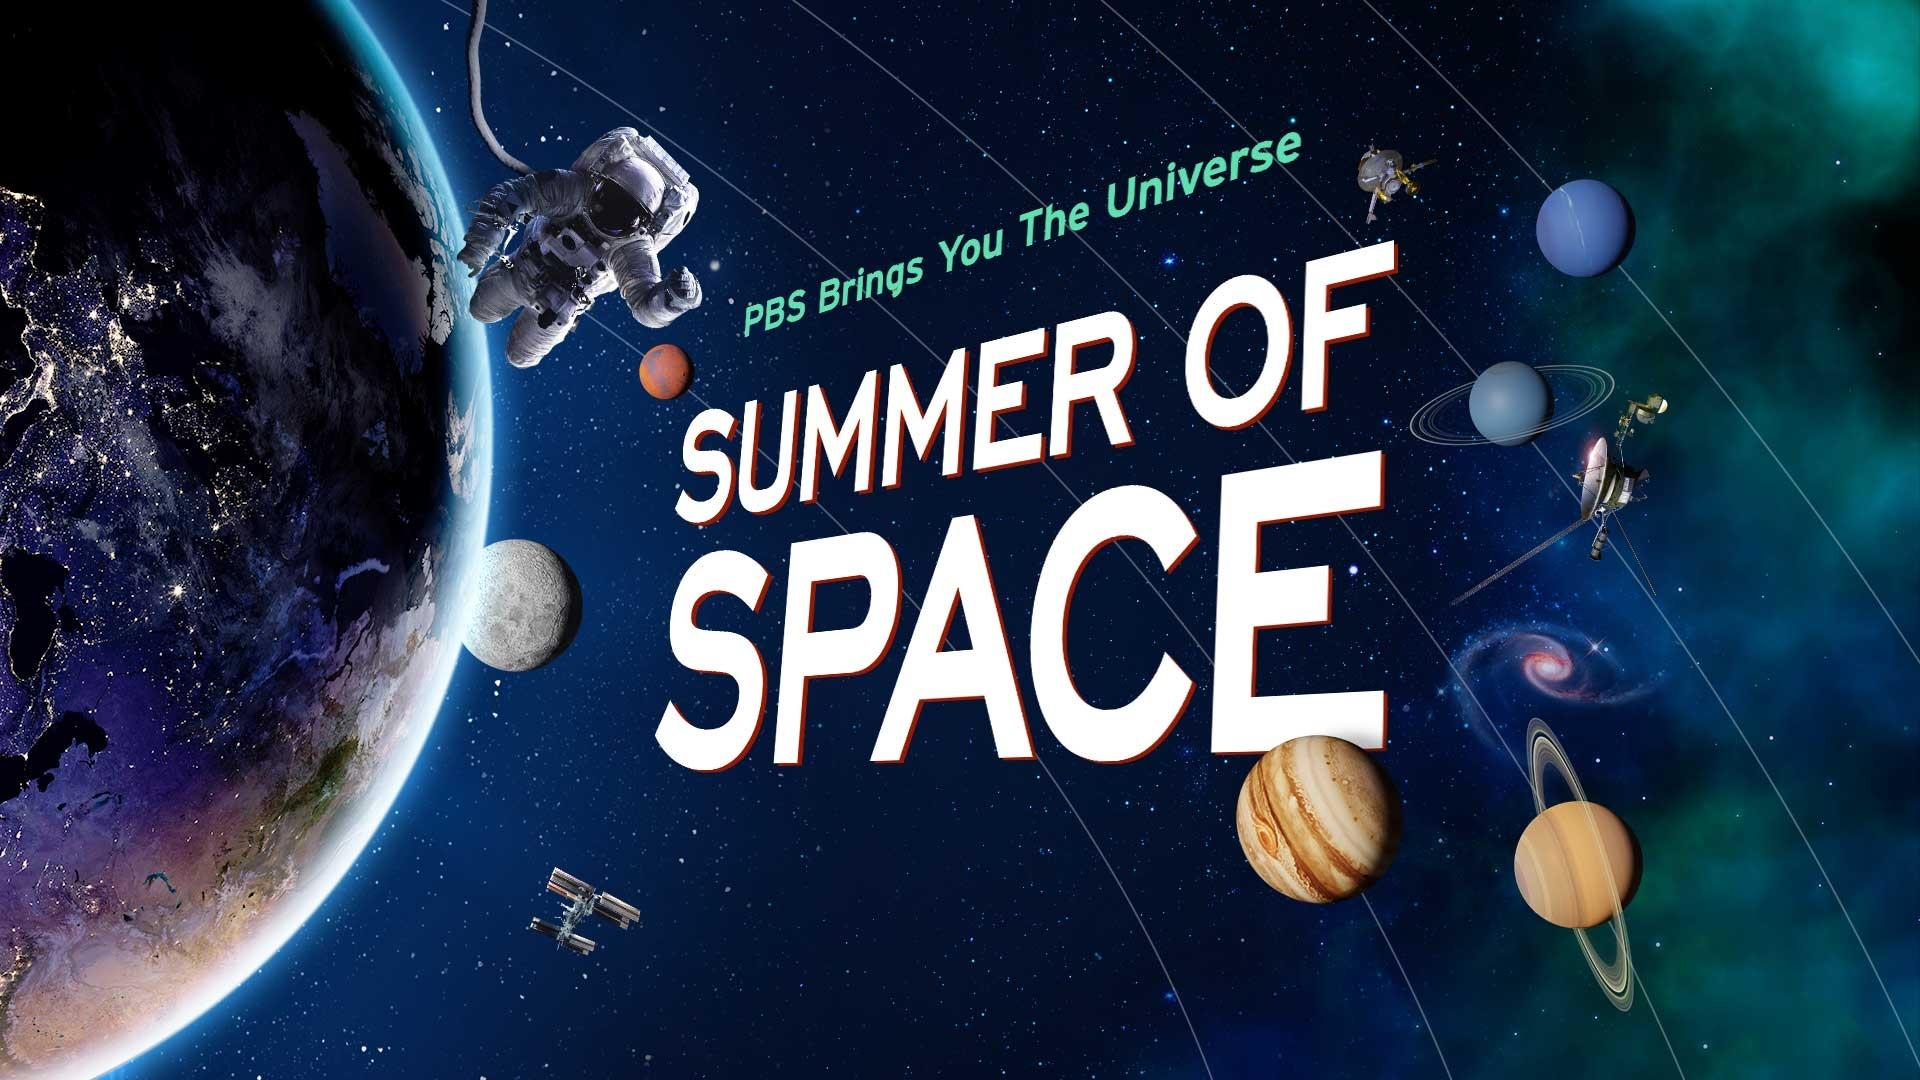 PBS Summer of Space | The Journey is Underway